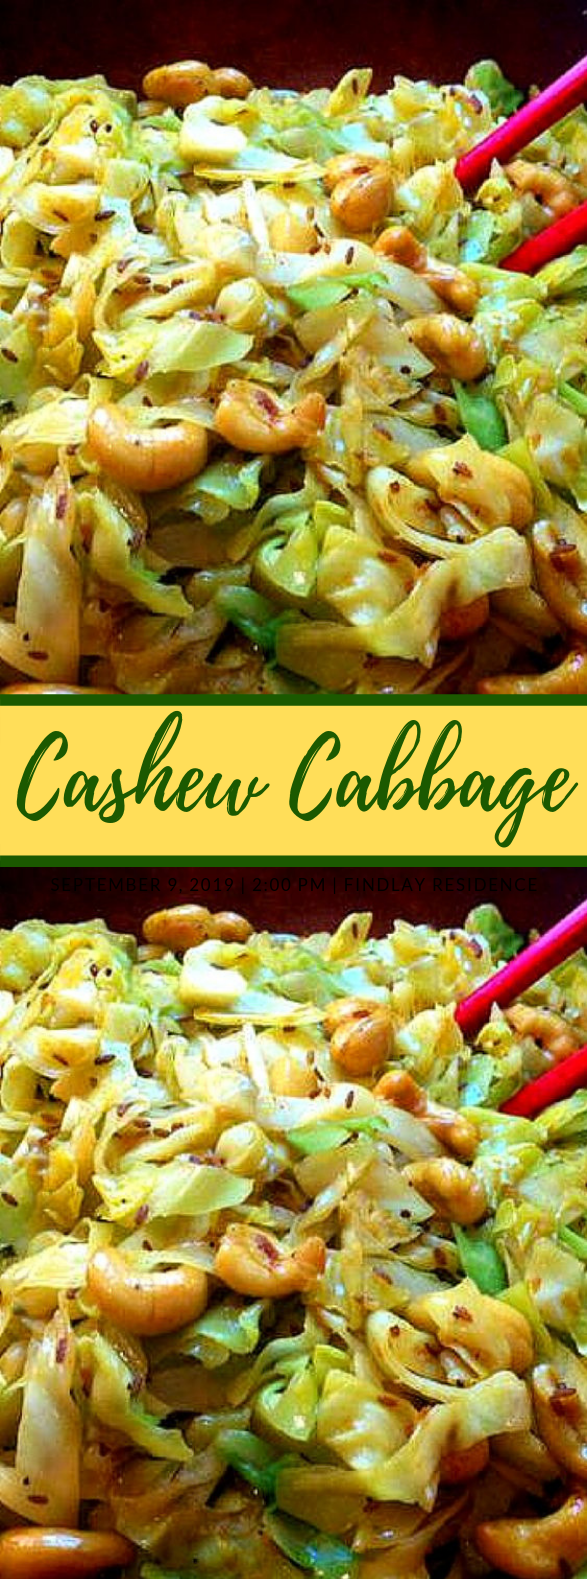 Cashew Cabbage #vegetarian #salads